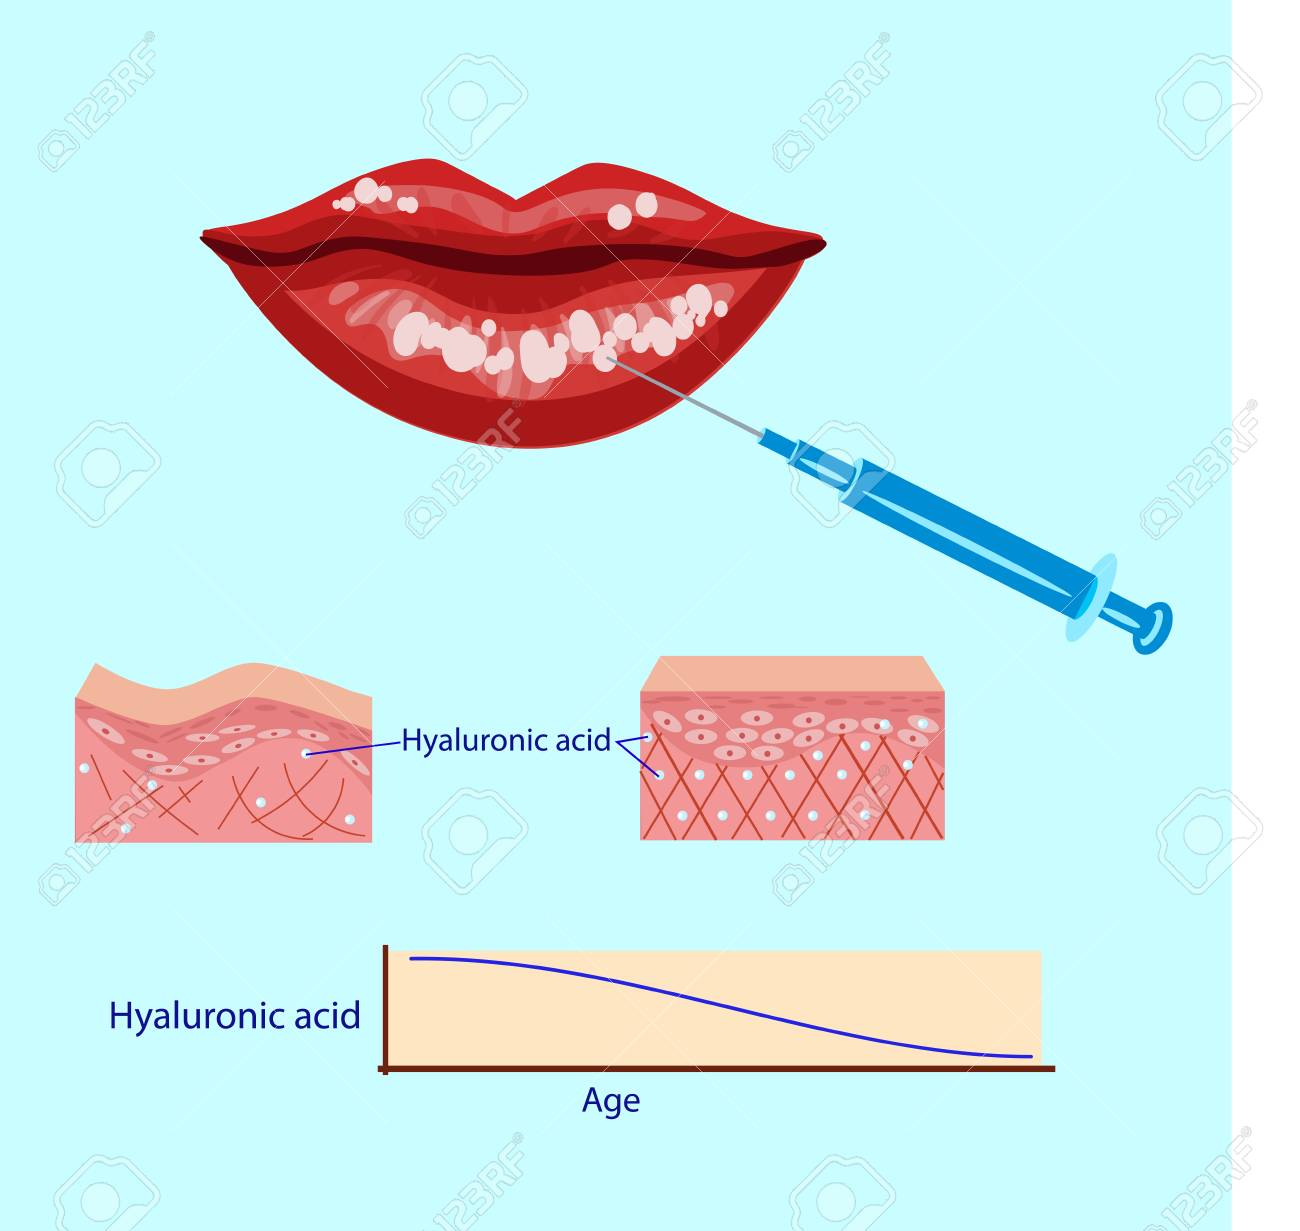 hight resolution of hyaluronic acid injection lips procedure vector illustration diagram stock vector 88355919